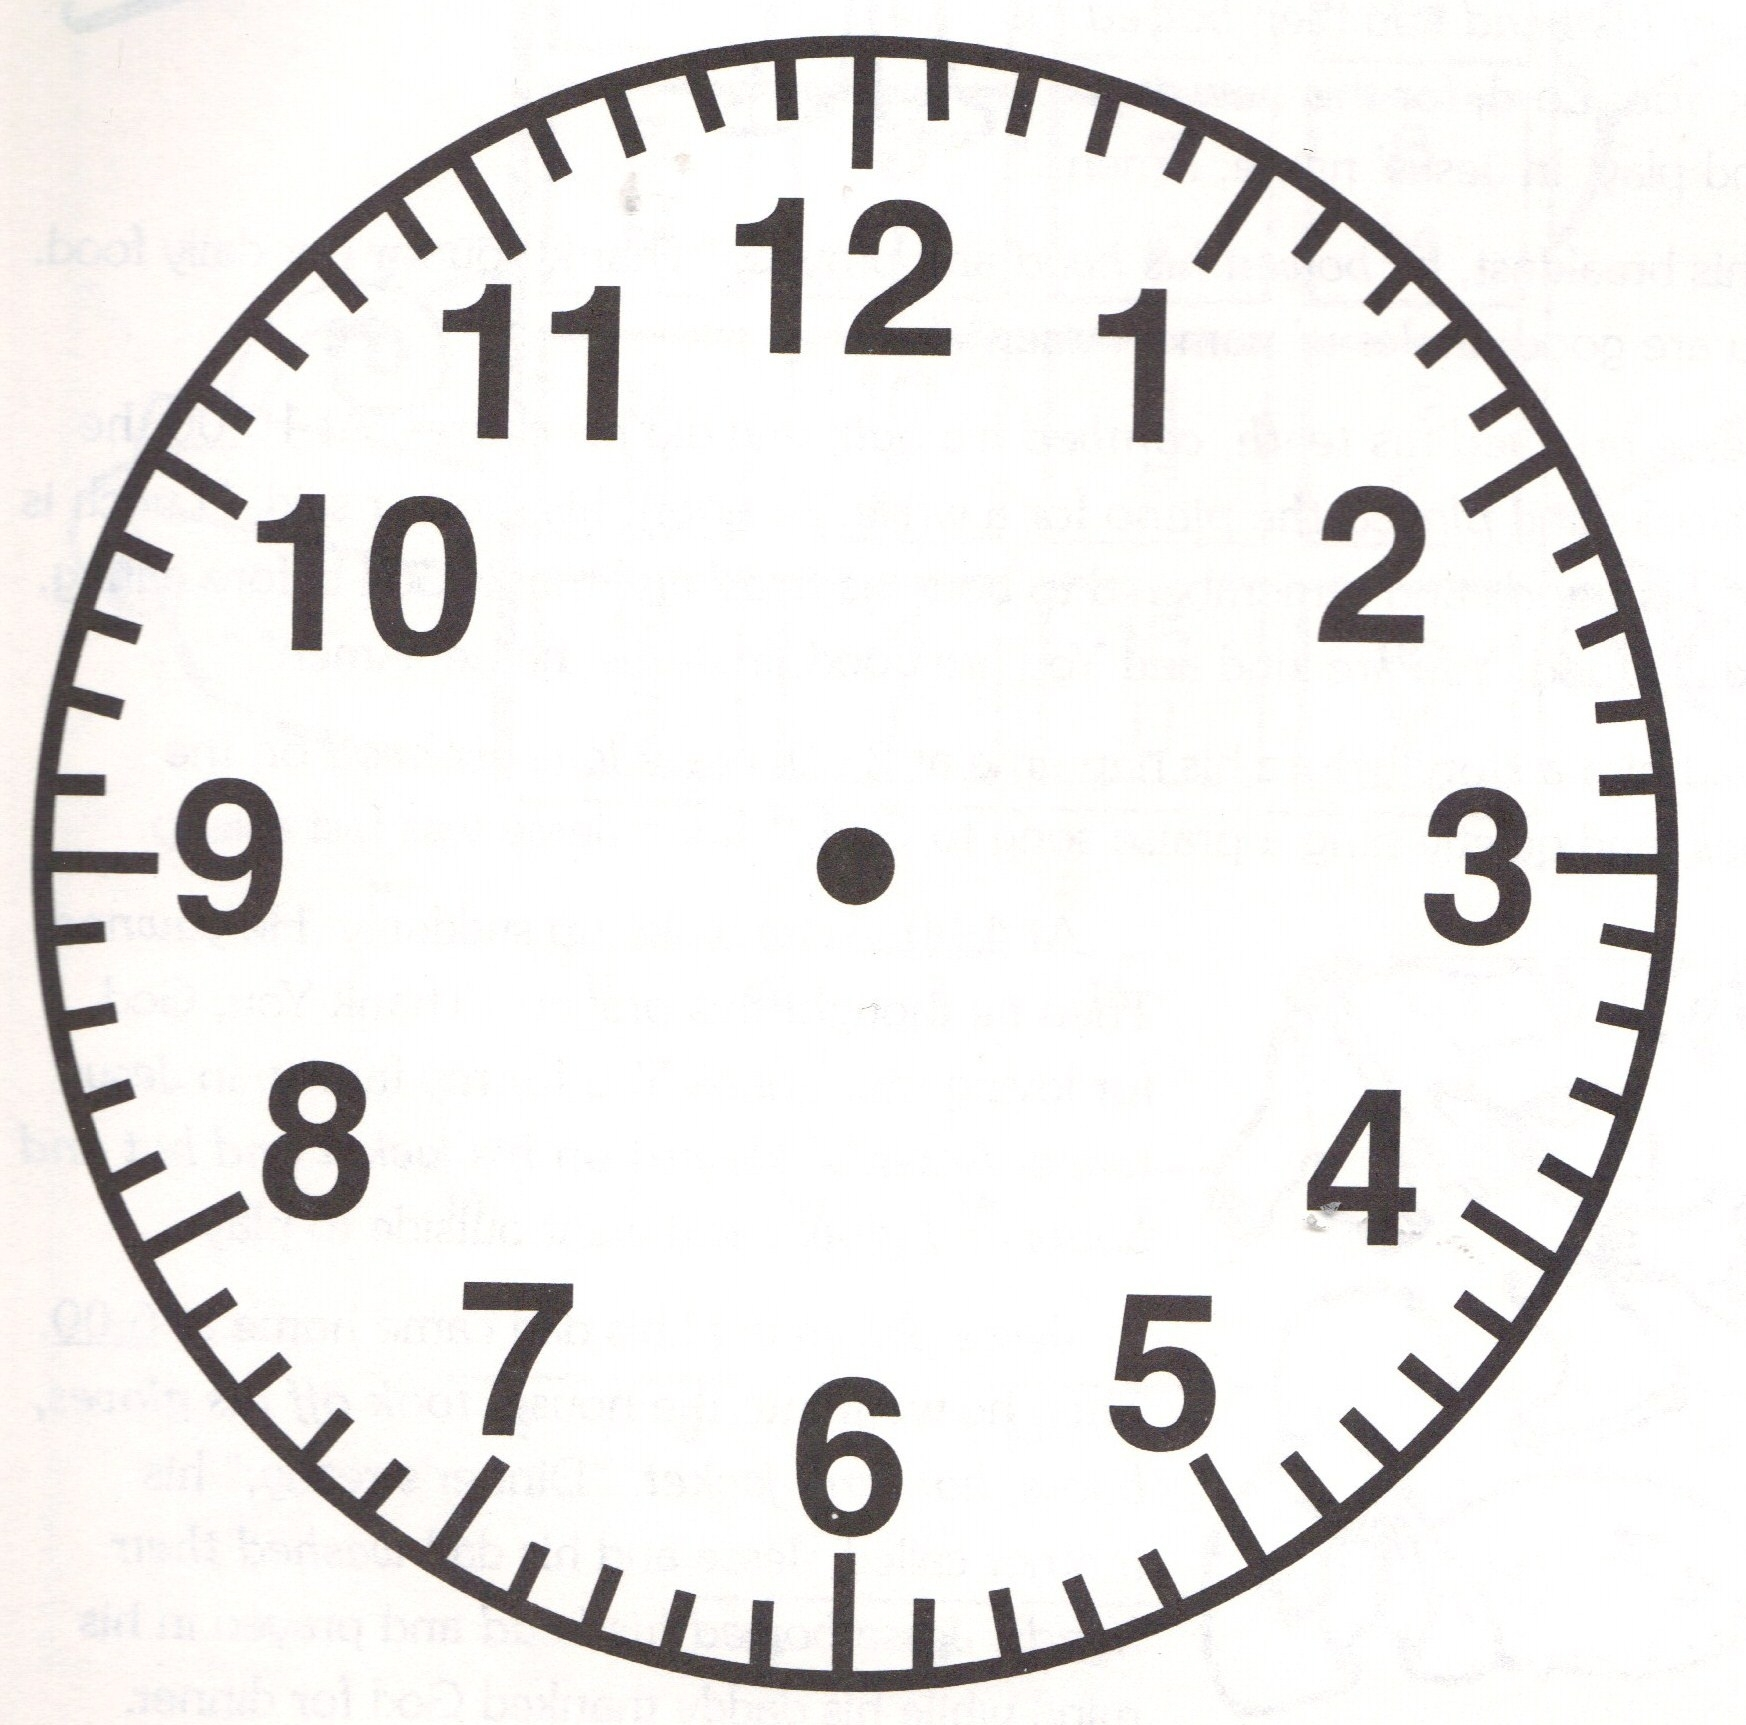 Clock Clipart Black And White Without Hands.